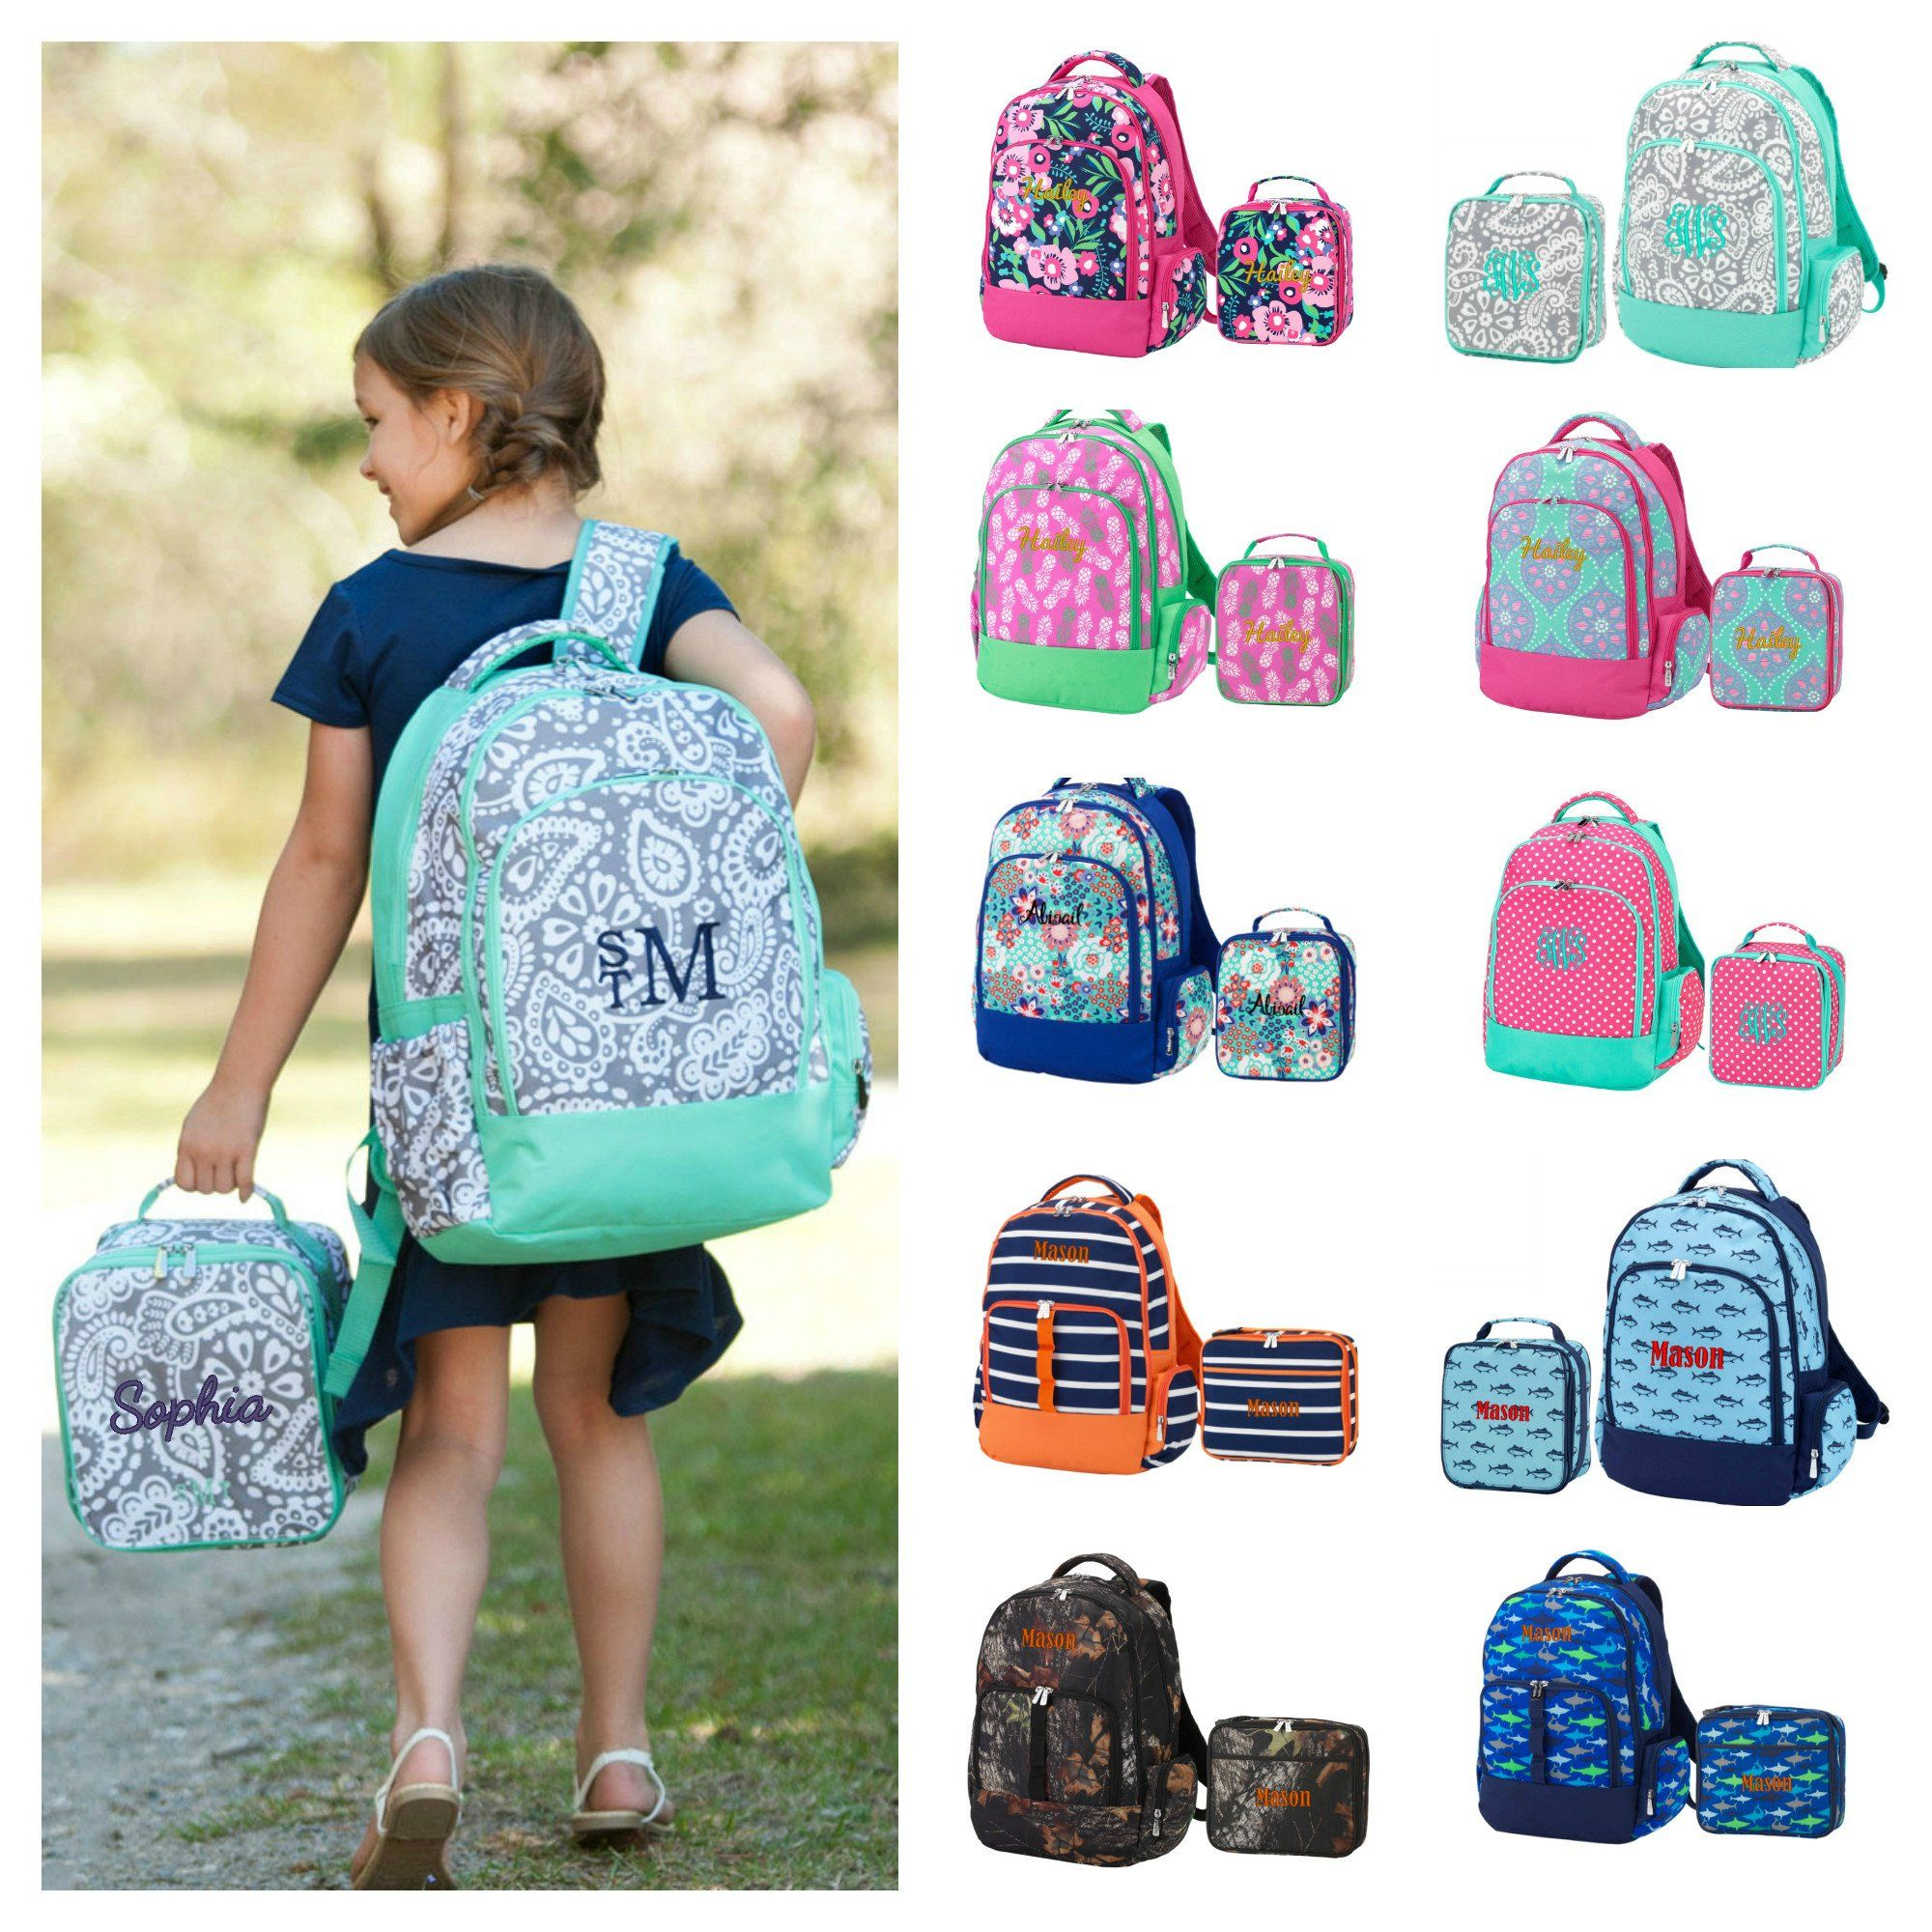 60cce7c990 Personalized Matching Backpack   Lunchbox Combo Bookbag   Lunch Bag -  Paisley